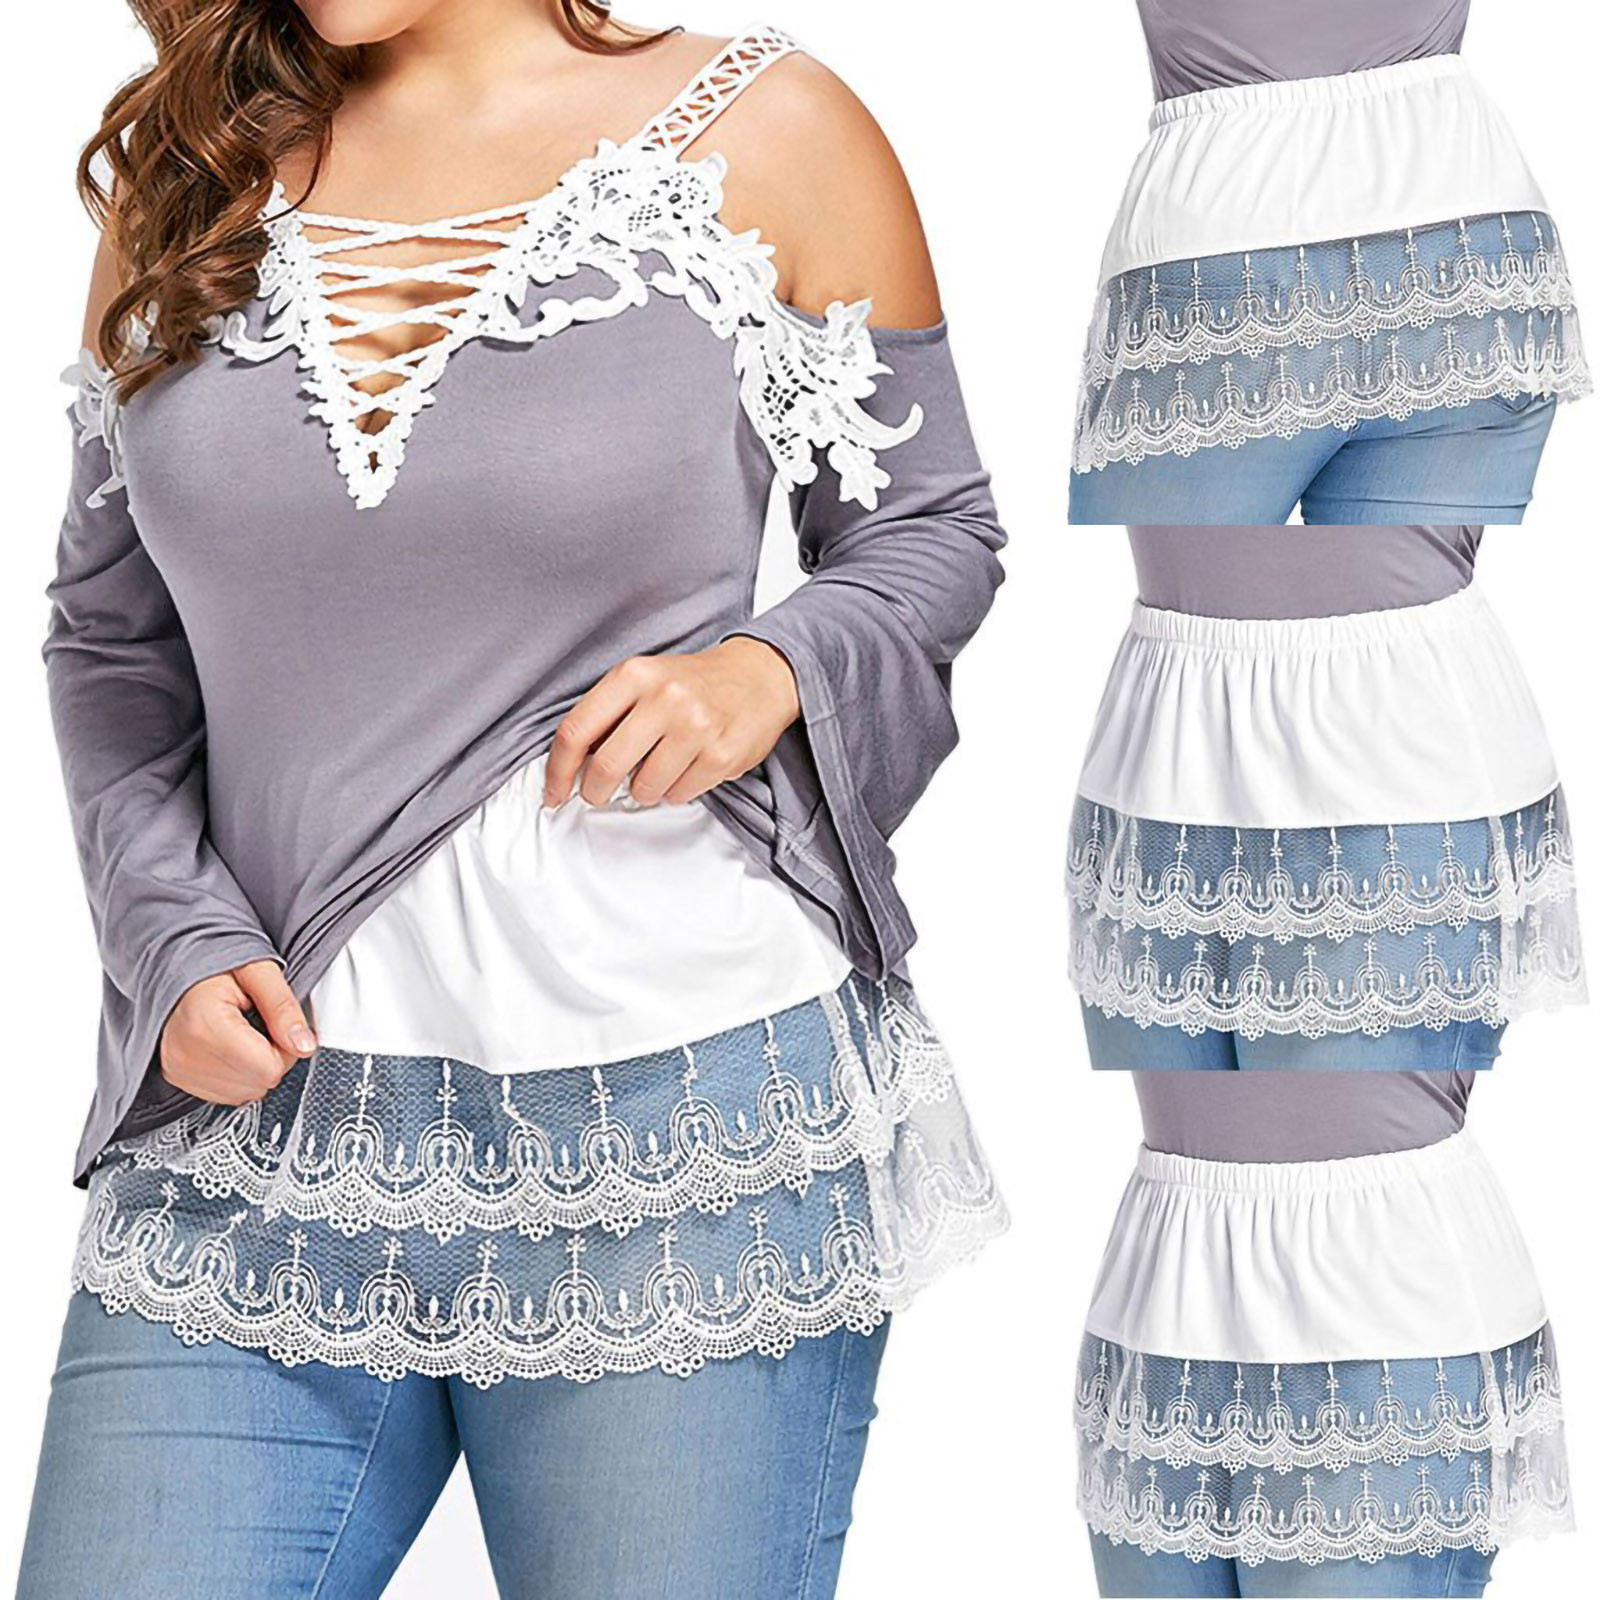 Womens Layered Tiered Sheer Lace Trim Extender Half Slip Skirt Plus Size S-5XL